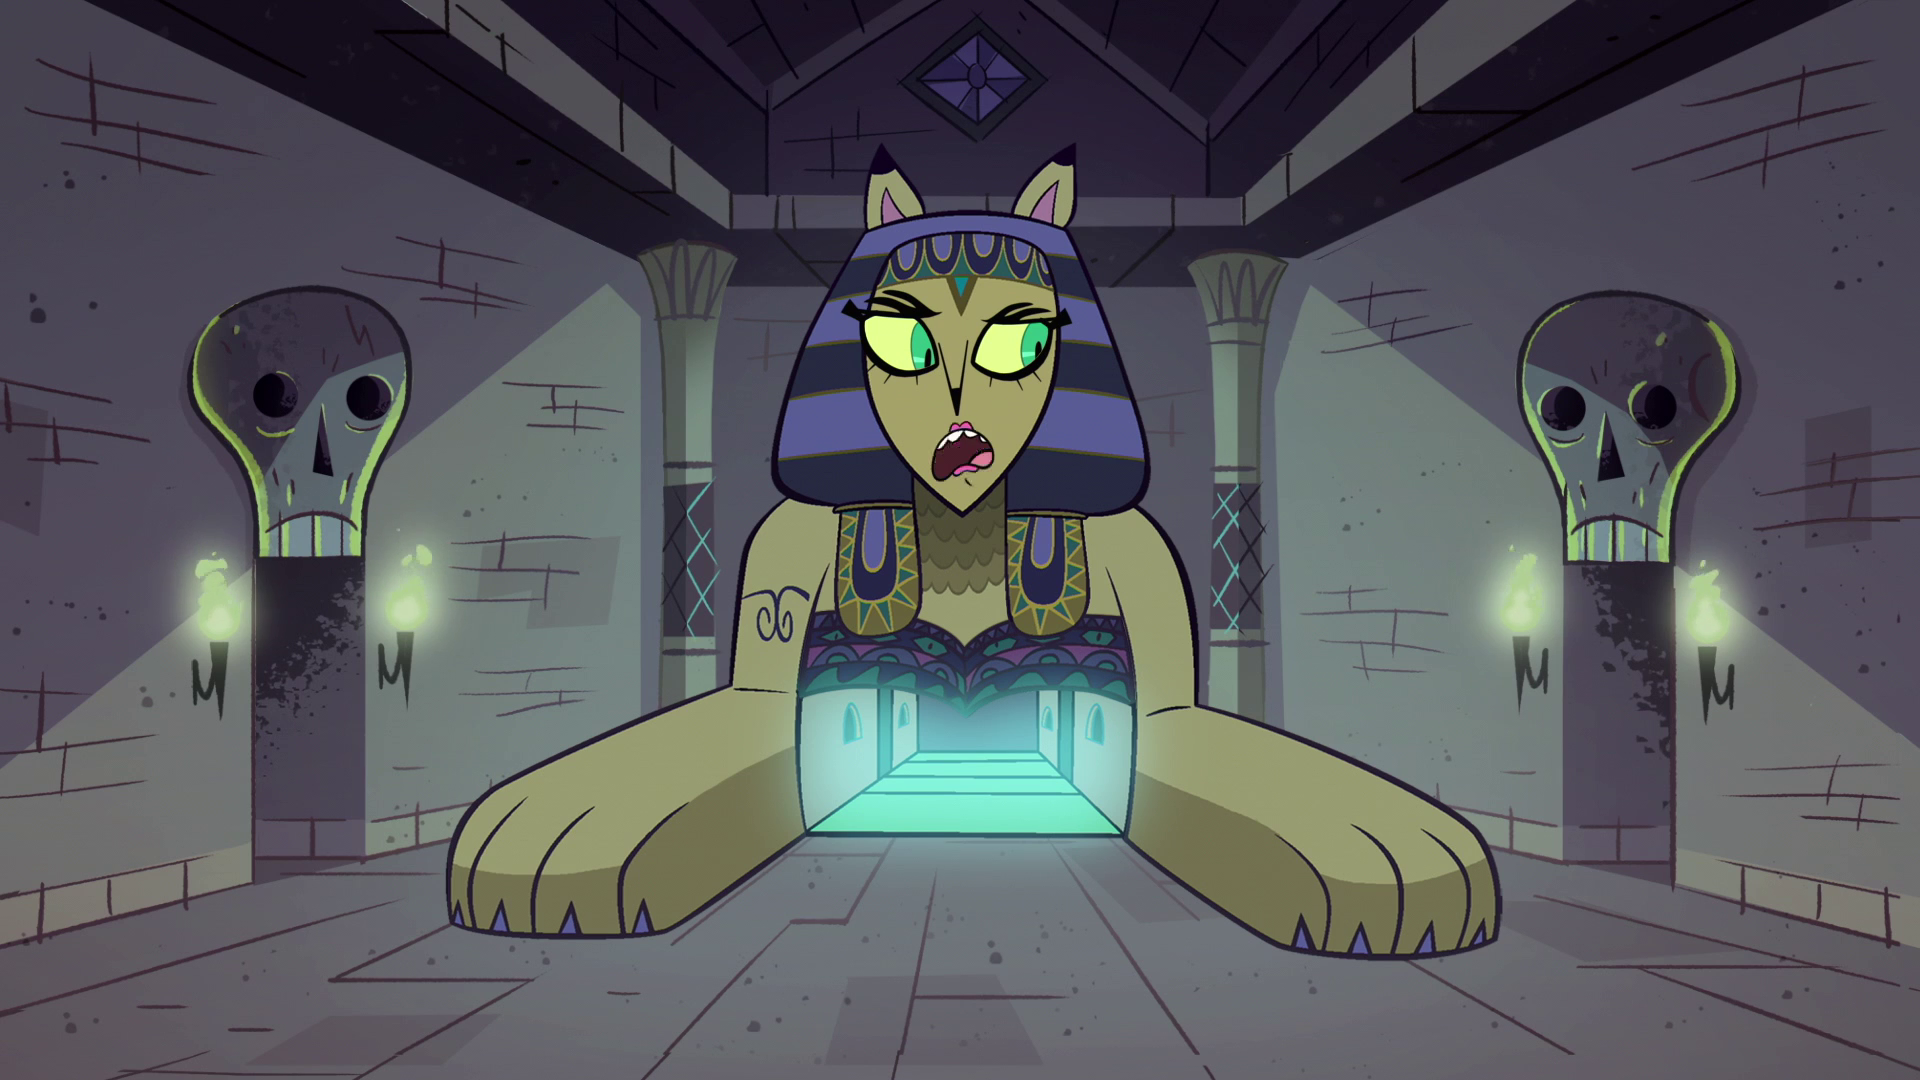 S1E8 Riddle Sphinx talking to skeleton door.png & Image - S1E8 Riddle Sphinx talking to skeleton door.png   Star vs ...